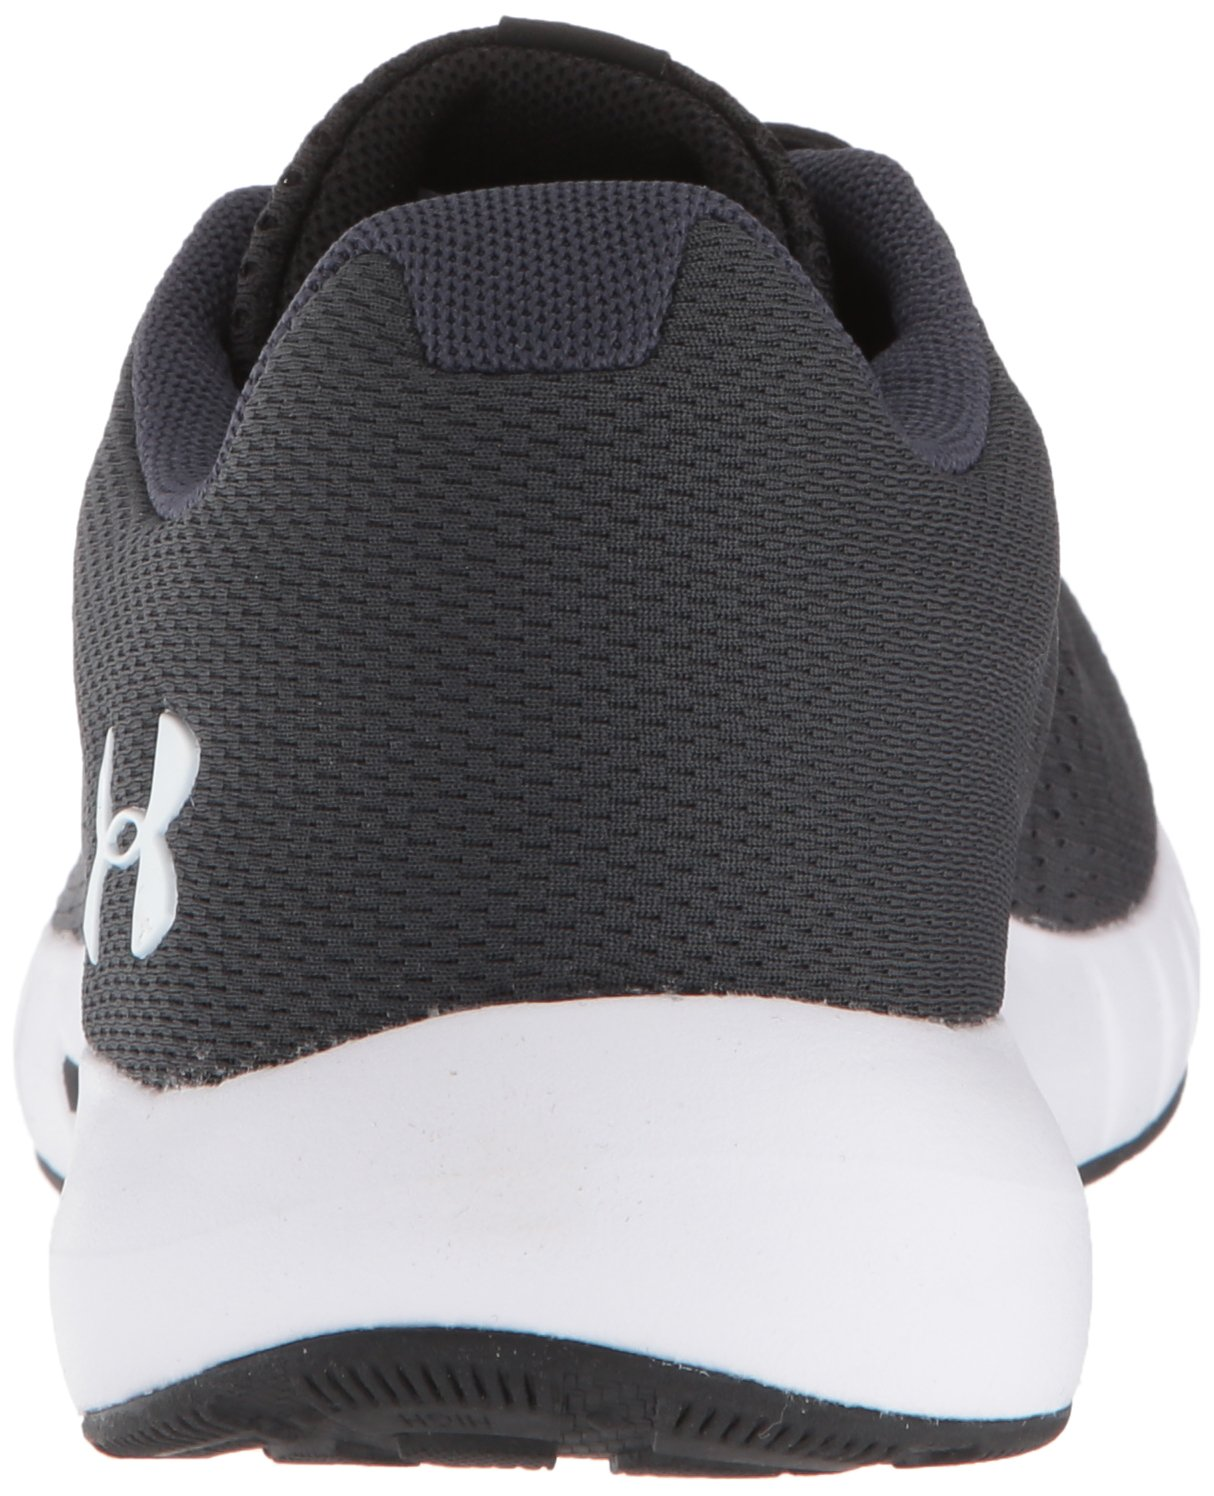 Under Armour Women's Micro Shoe G Pursuit D Running Shoe Micro B0775YNCV4 5.5 M US|Anthracite (100)/Black c42f02